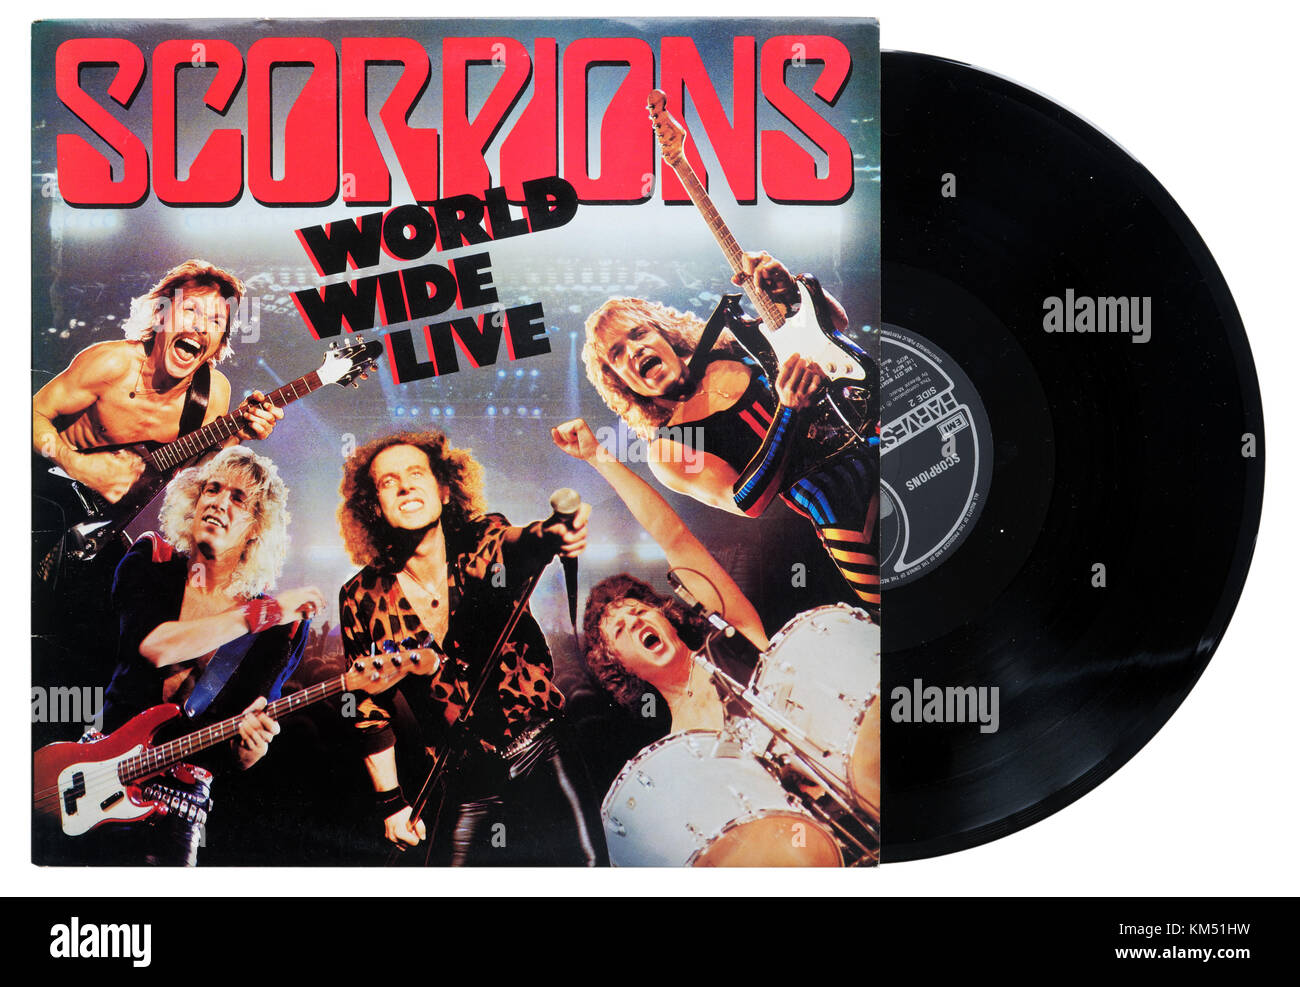 Scorpions World Wide Live album - Stock Image